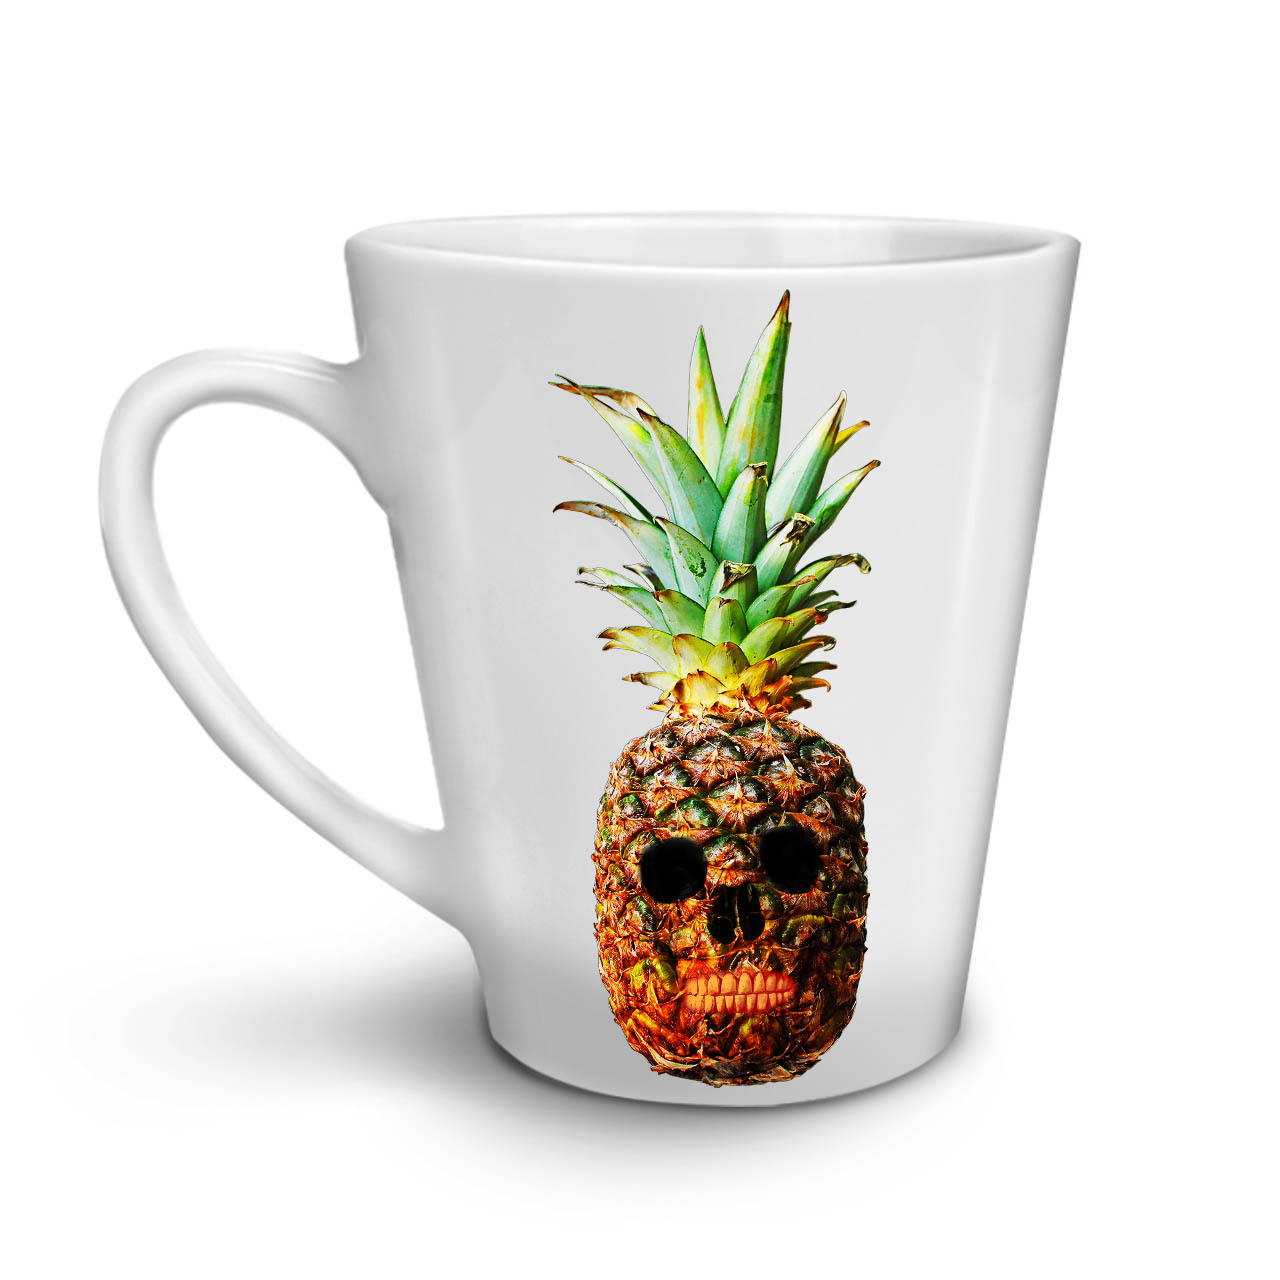 Pineapple Skull Face NEW White Tea Coffee Latte Mug 12 17 oz | Wellcoda